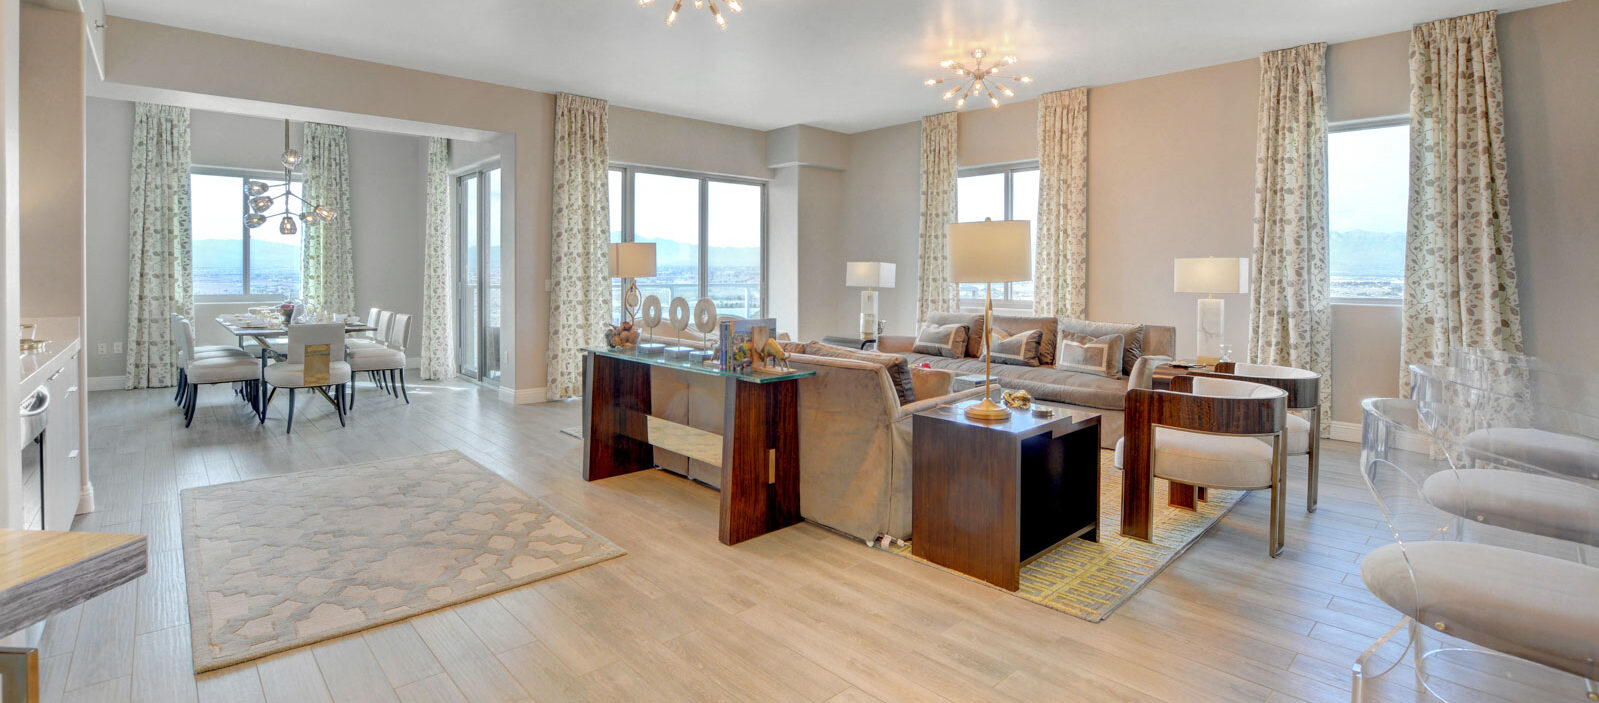 penthouse living room with newly remodeled finishes